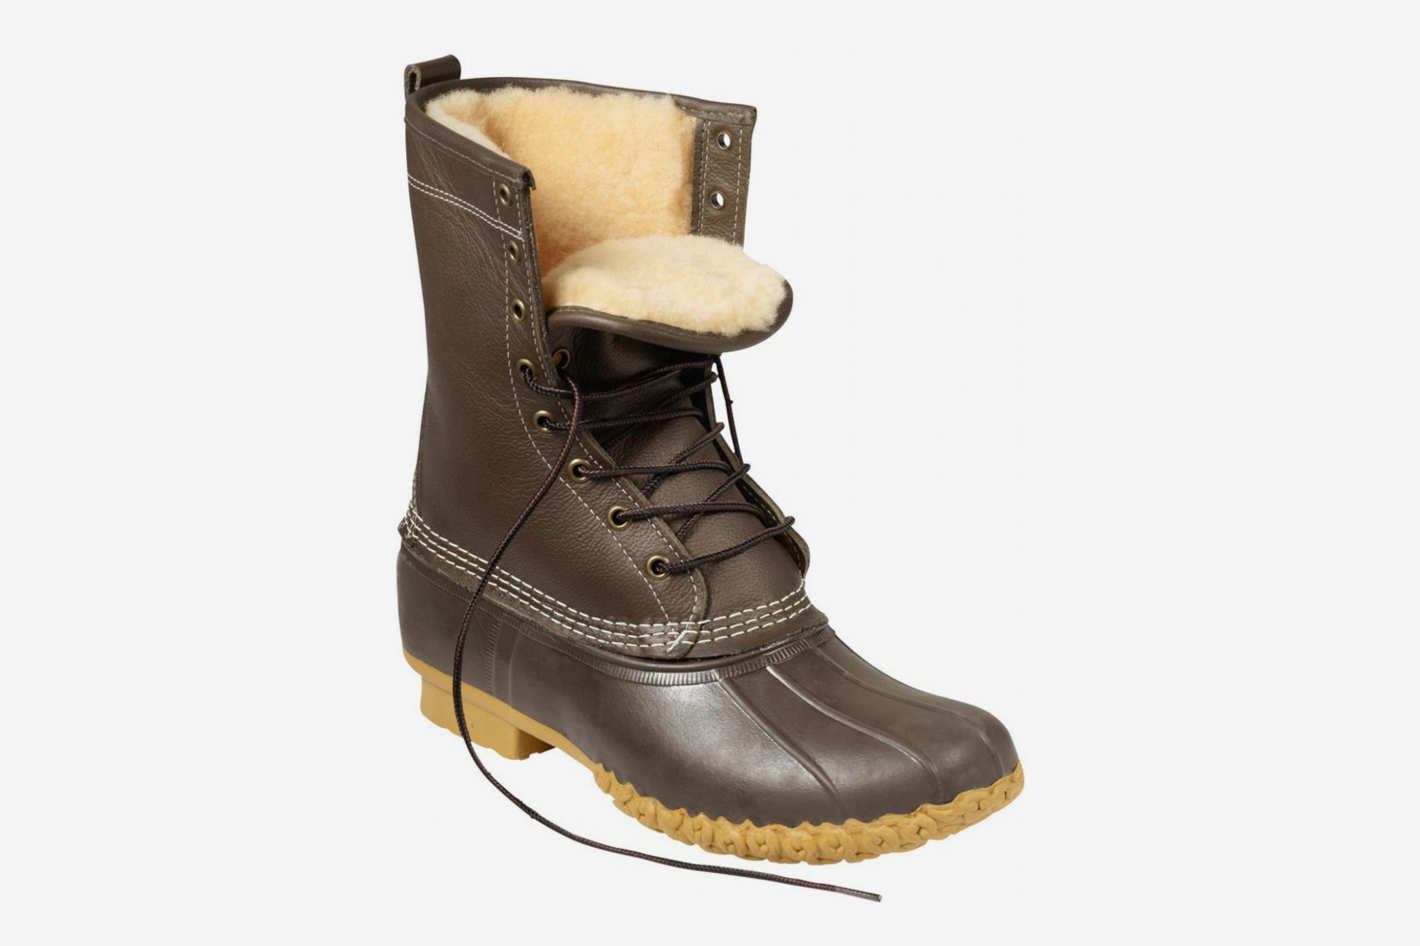 "L.L. Bean Boots, 10"" Shearling-Lined"